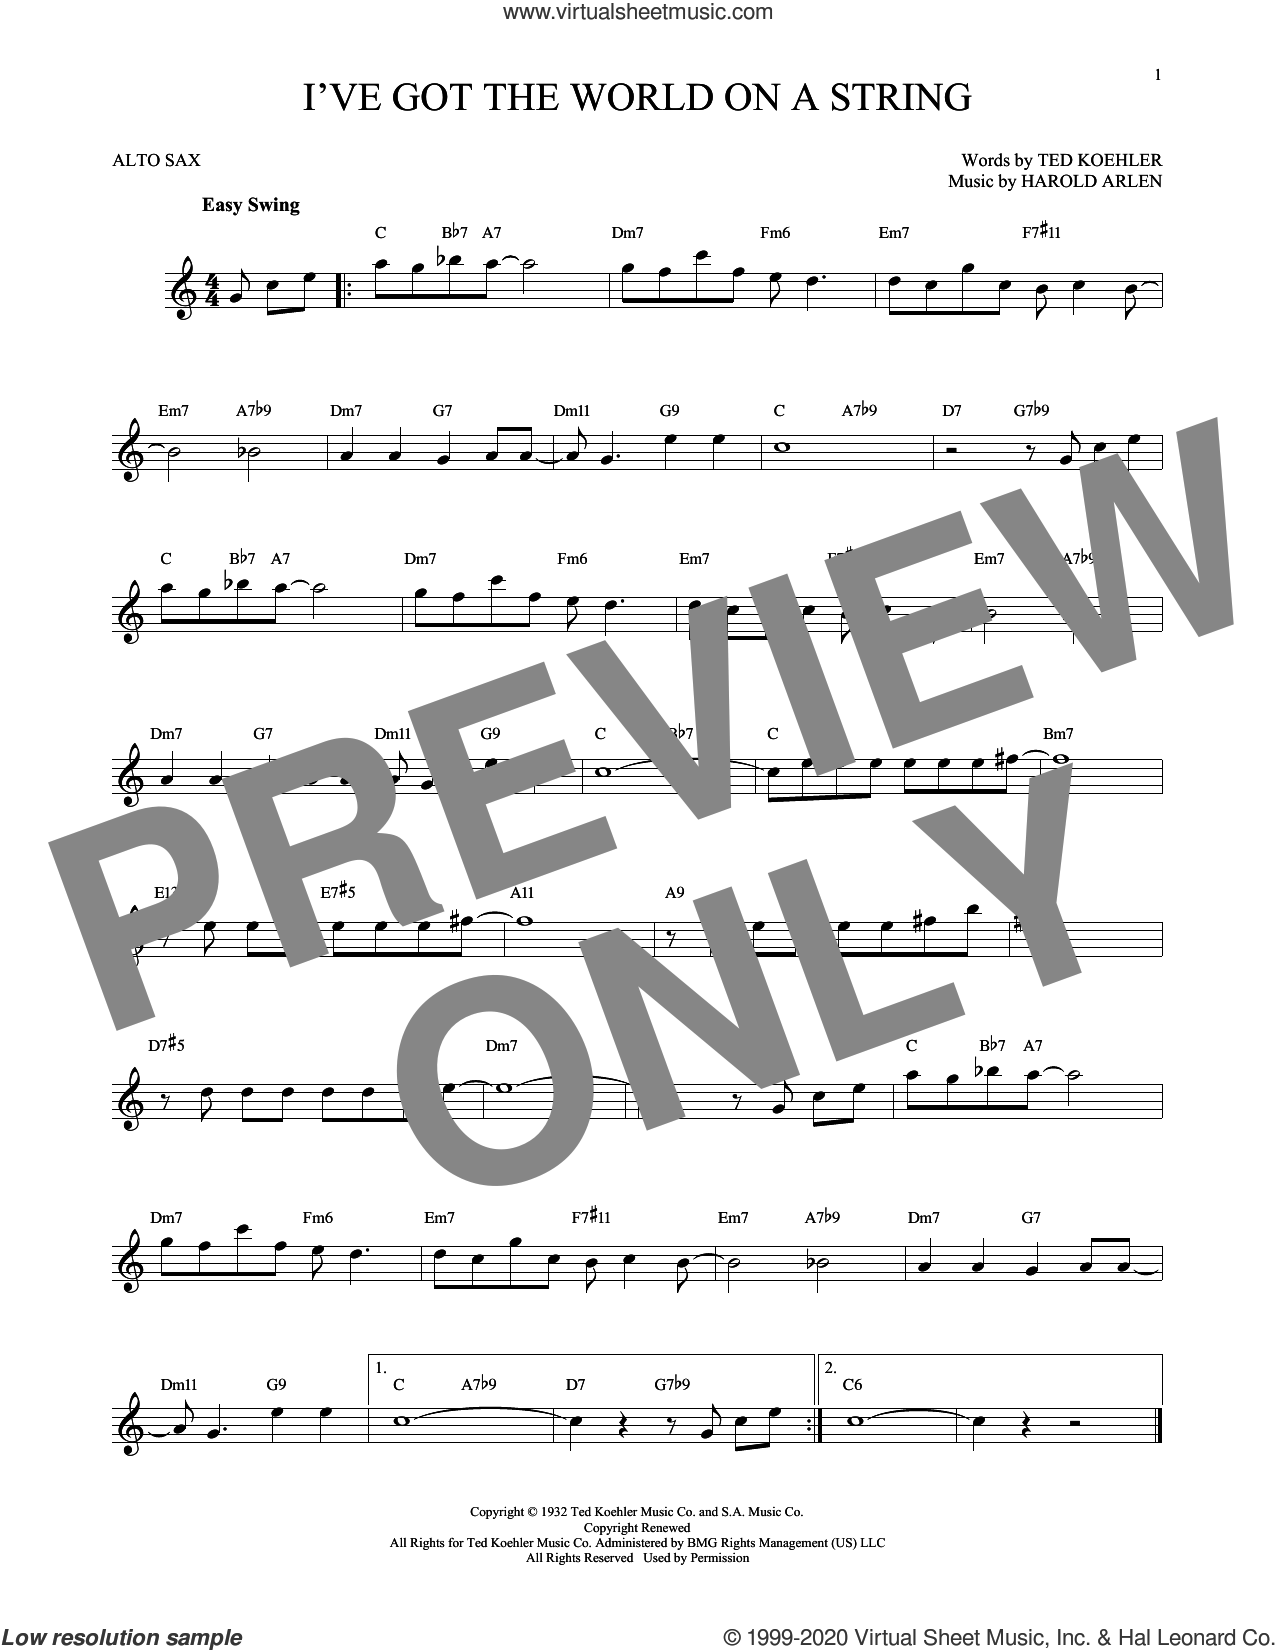 I've Got The World On A String sheet music for alto saxophone solo by Harold Arlen, Dick Hyman and Ted Koehler, intermediate skill level